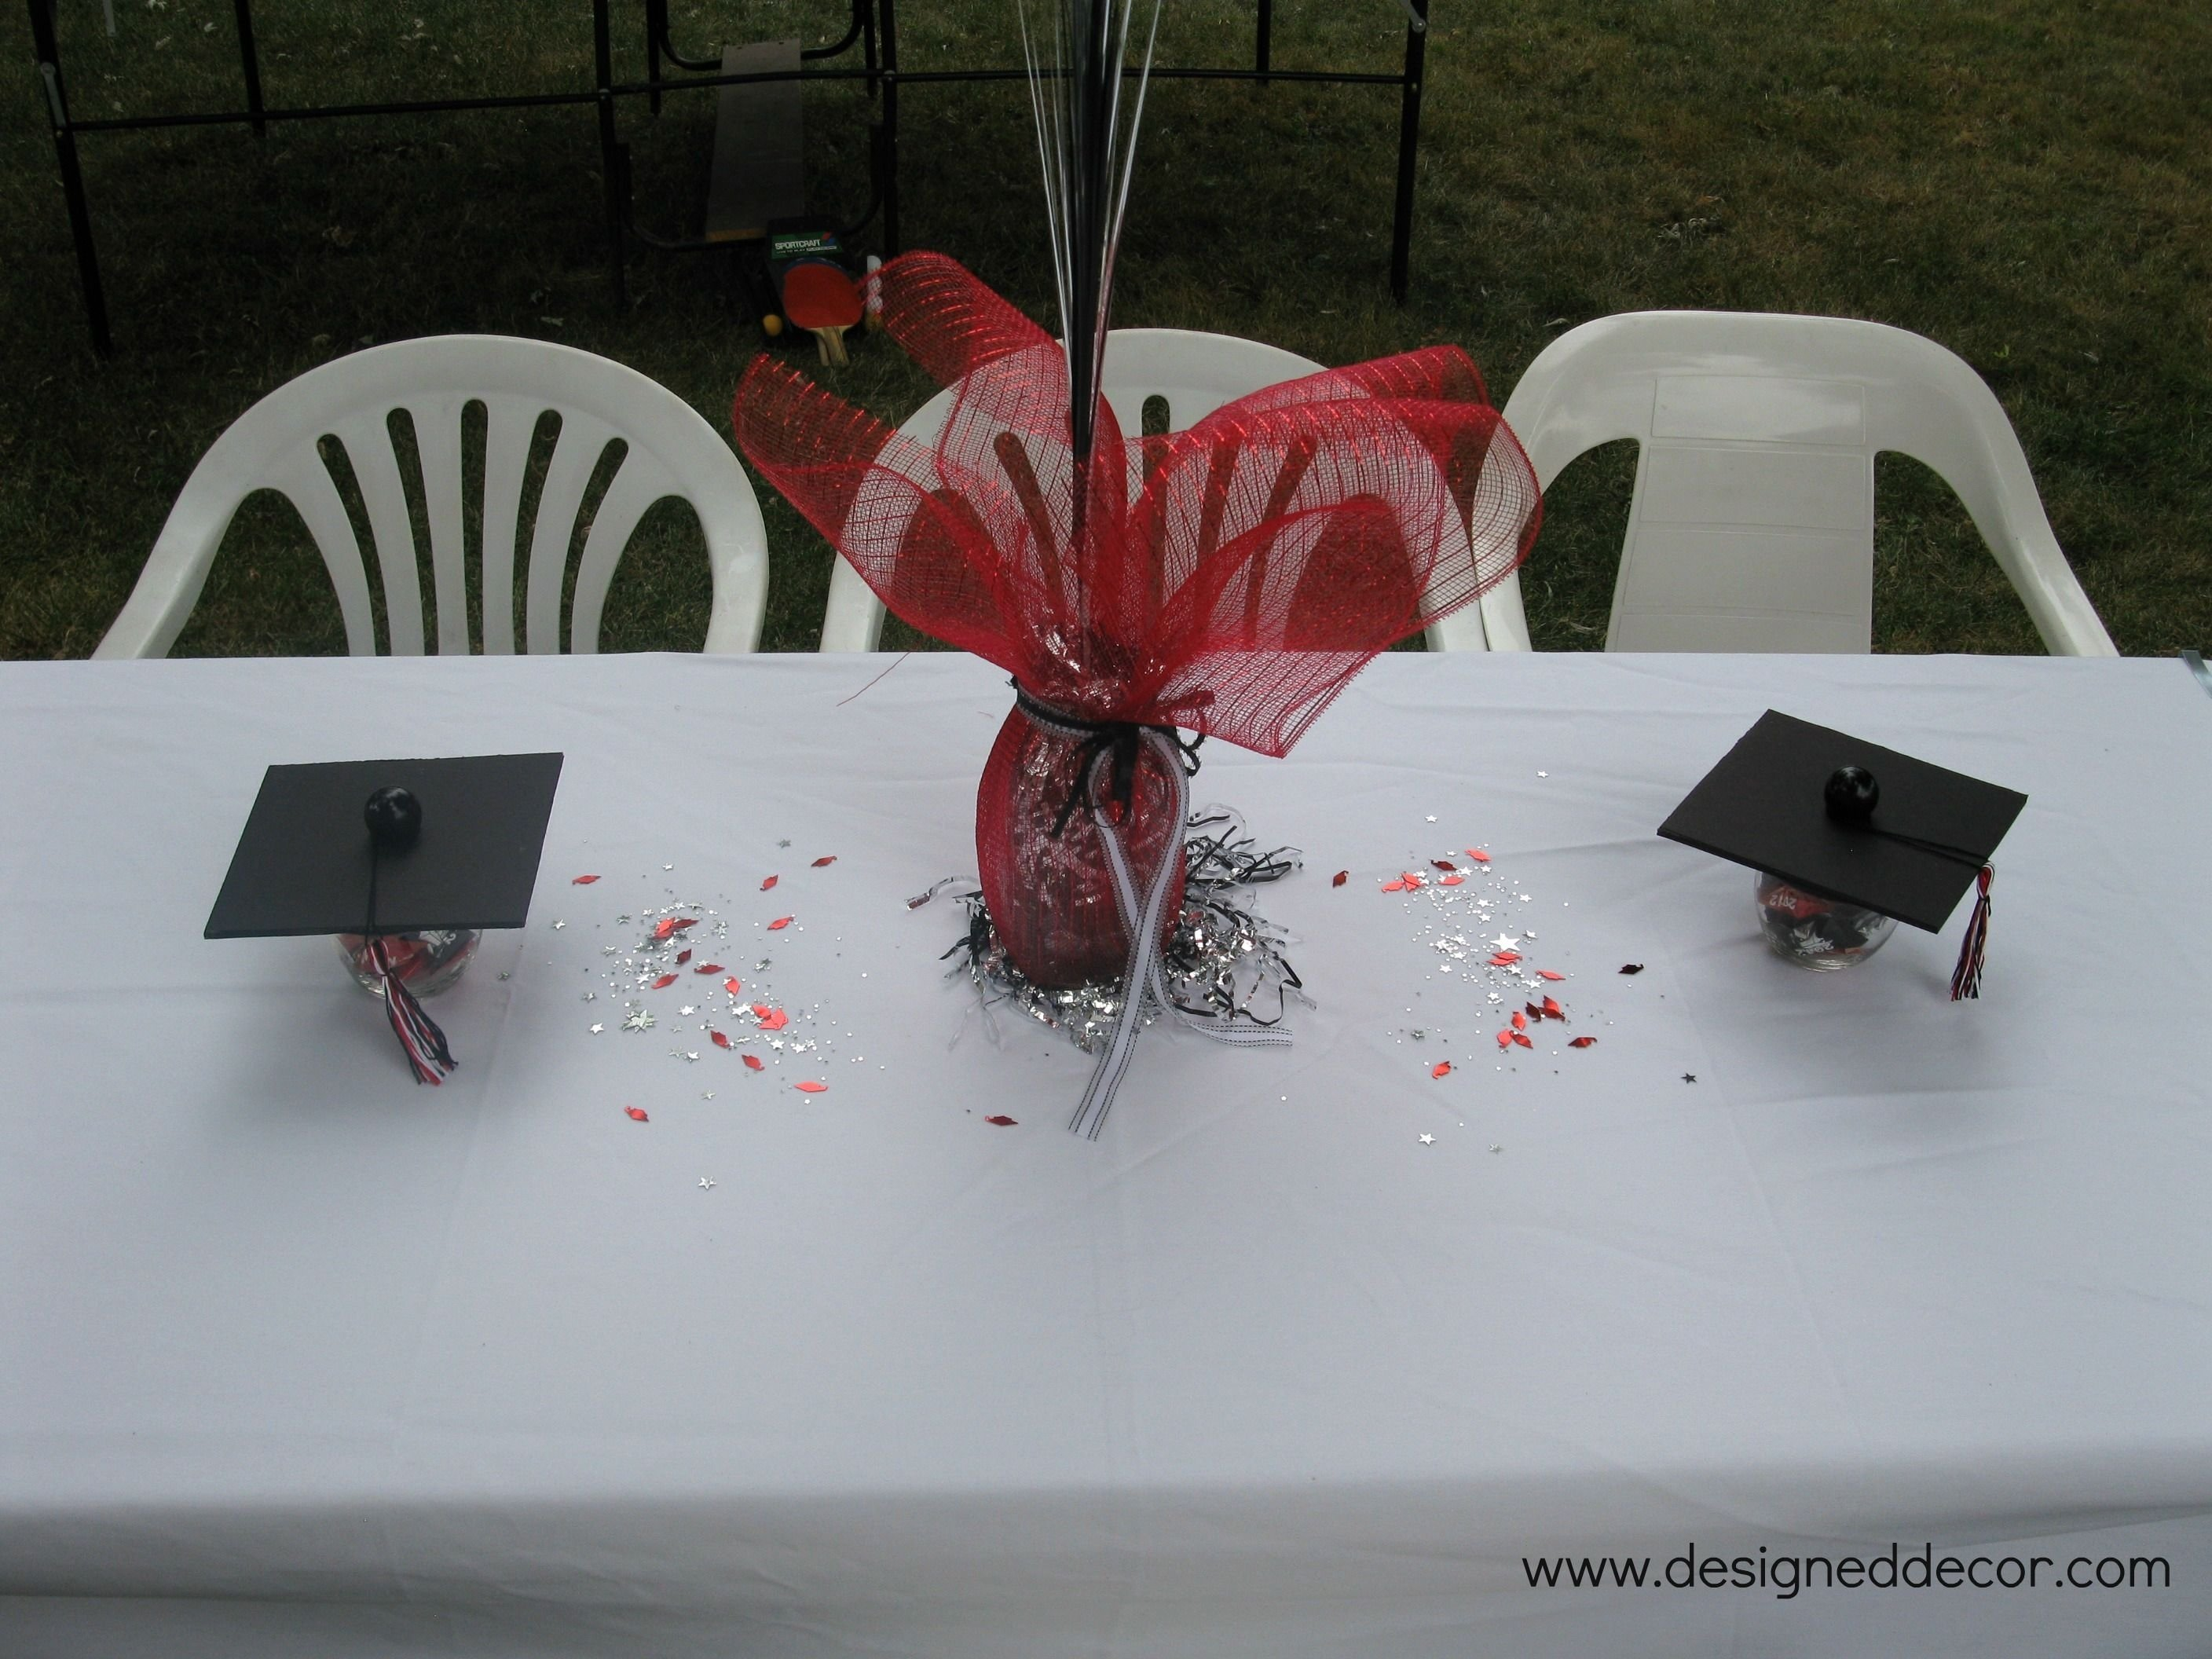 10 Most Popular Graduation Party Table Centerpiece Ideas graduation party putting it all together graduation centerpiece